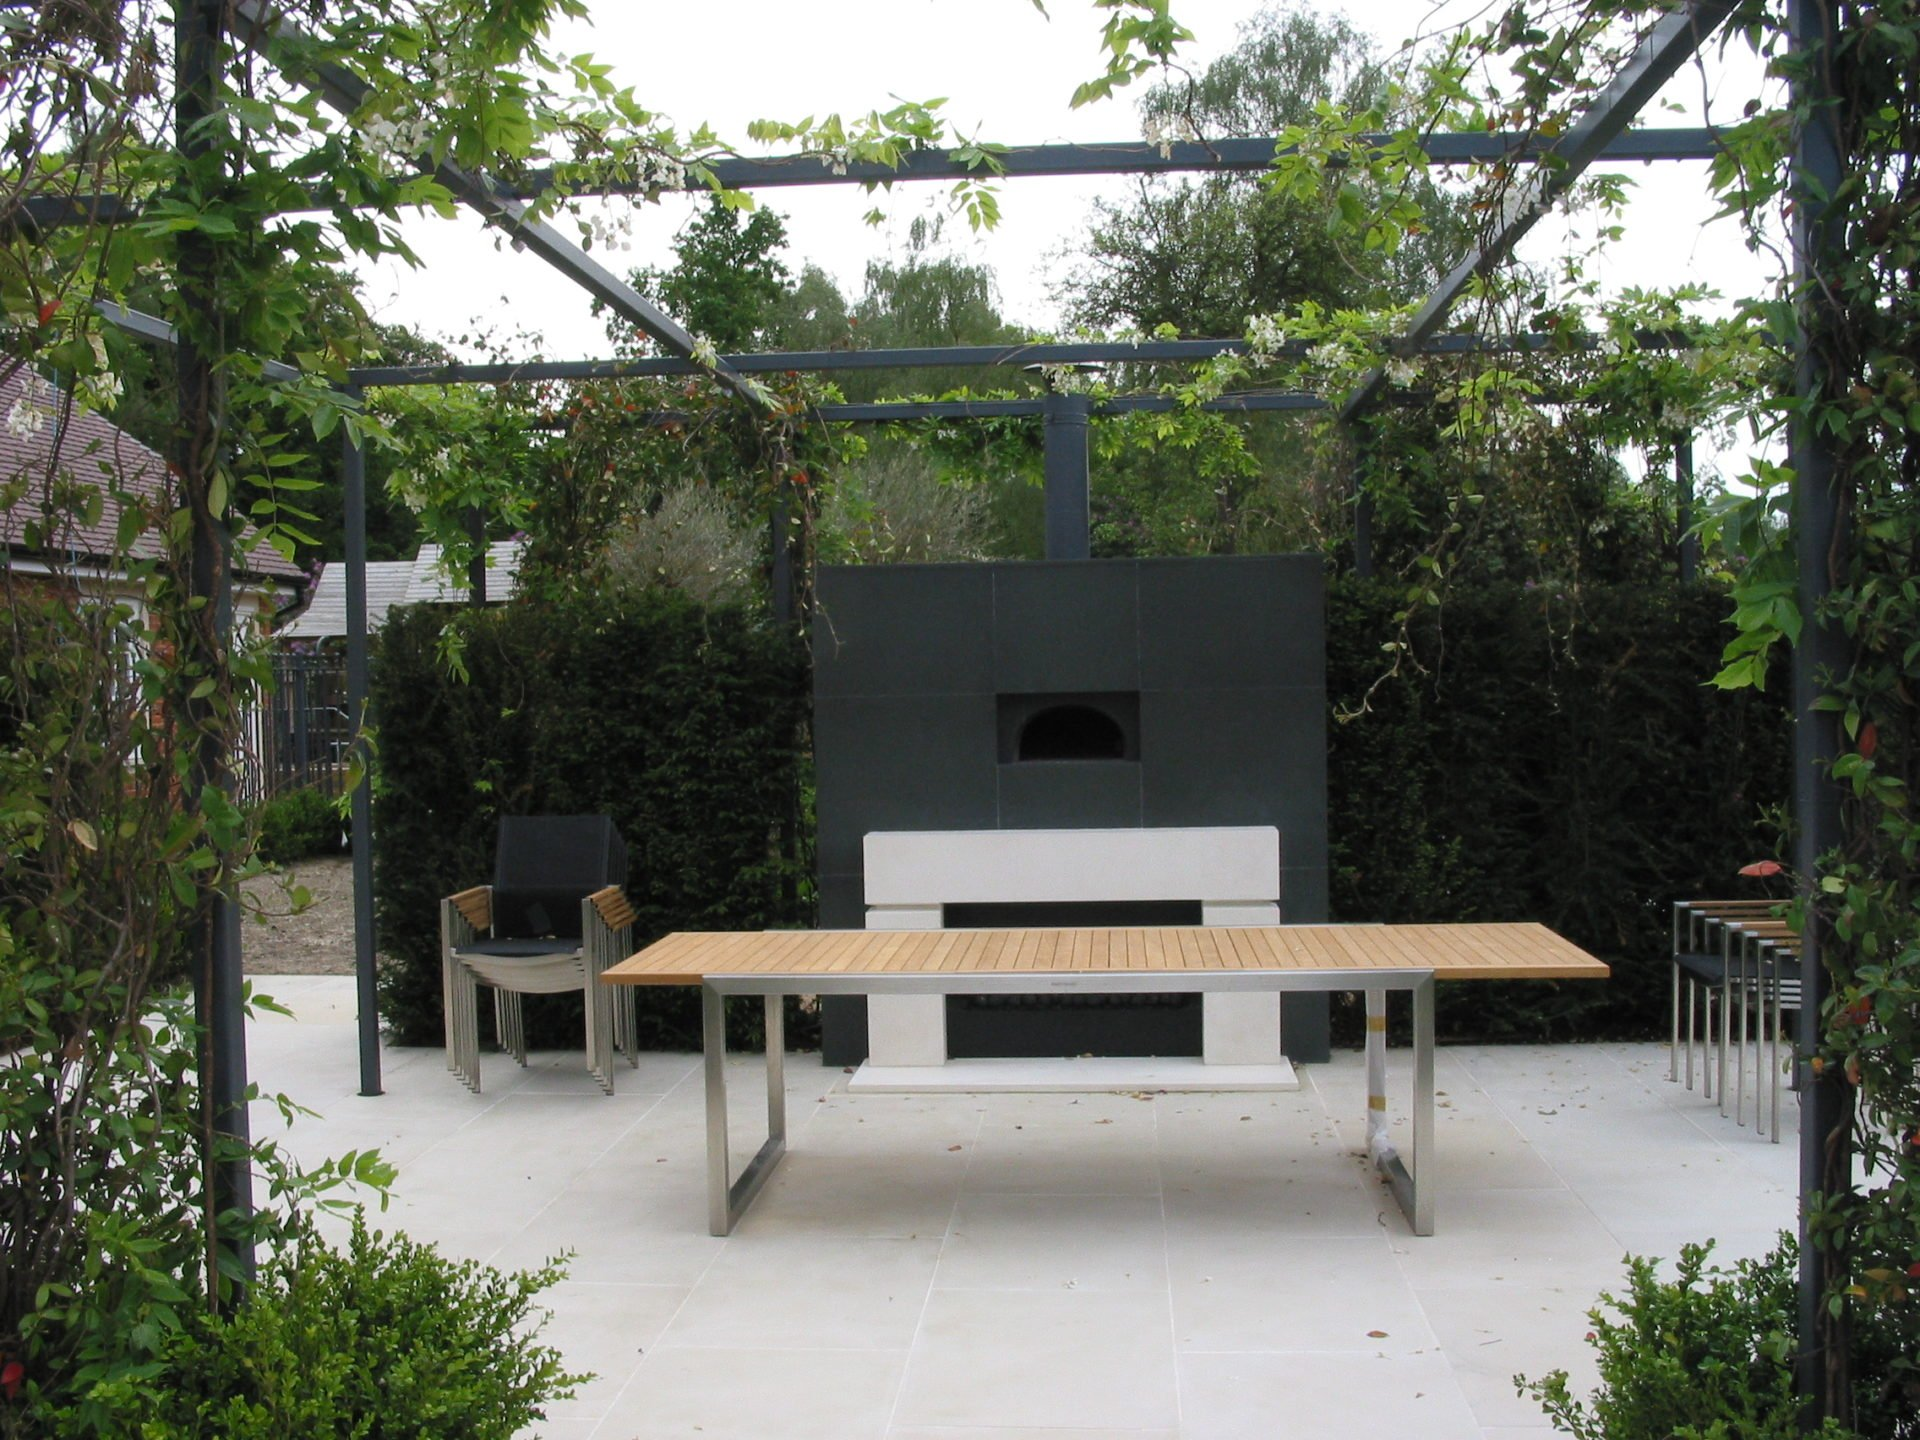 outdoor kitchen, potters bar, EN6, Firemagic BBQ, four grand-mere, wood-fired oven, outdoor pizza oven, gas pizza oven,projects,